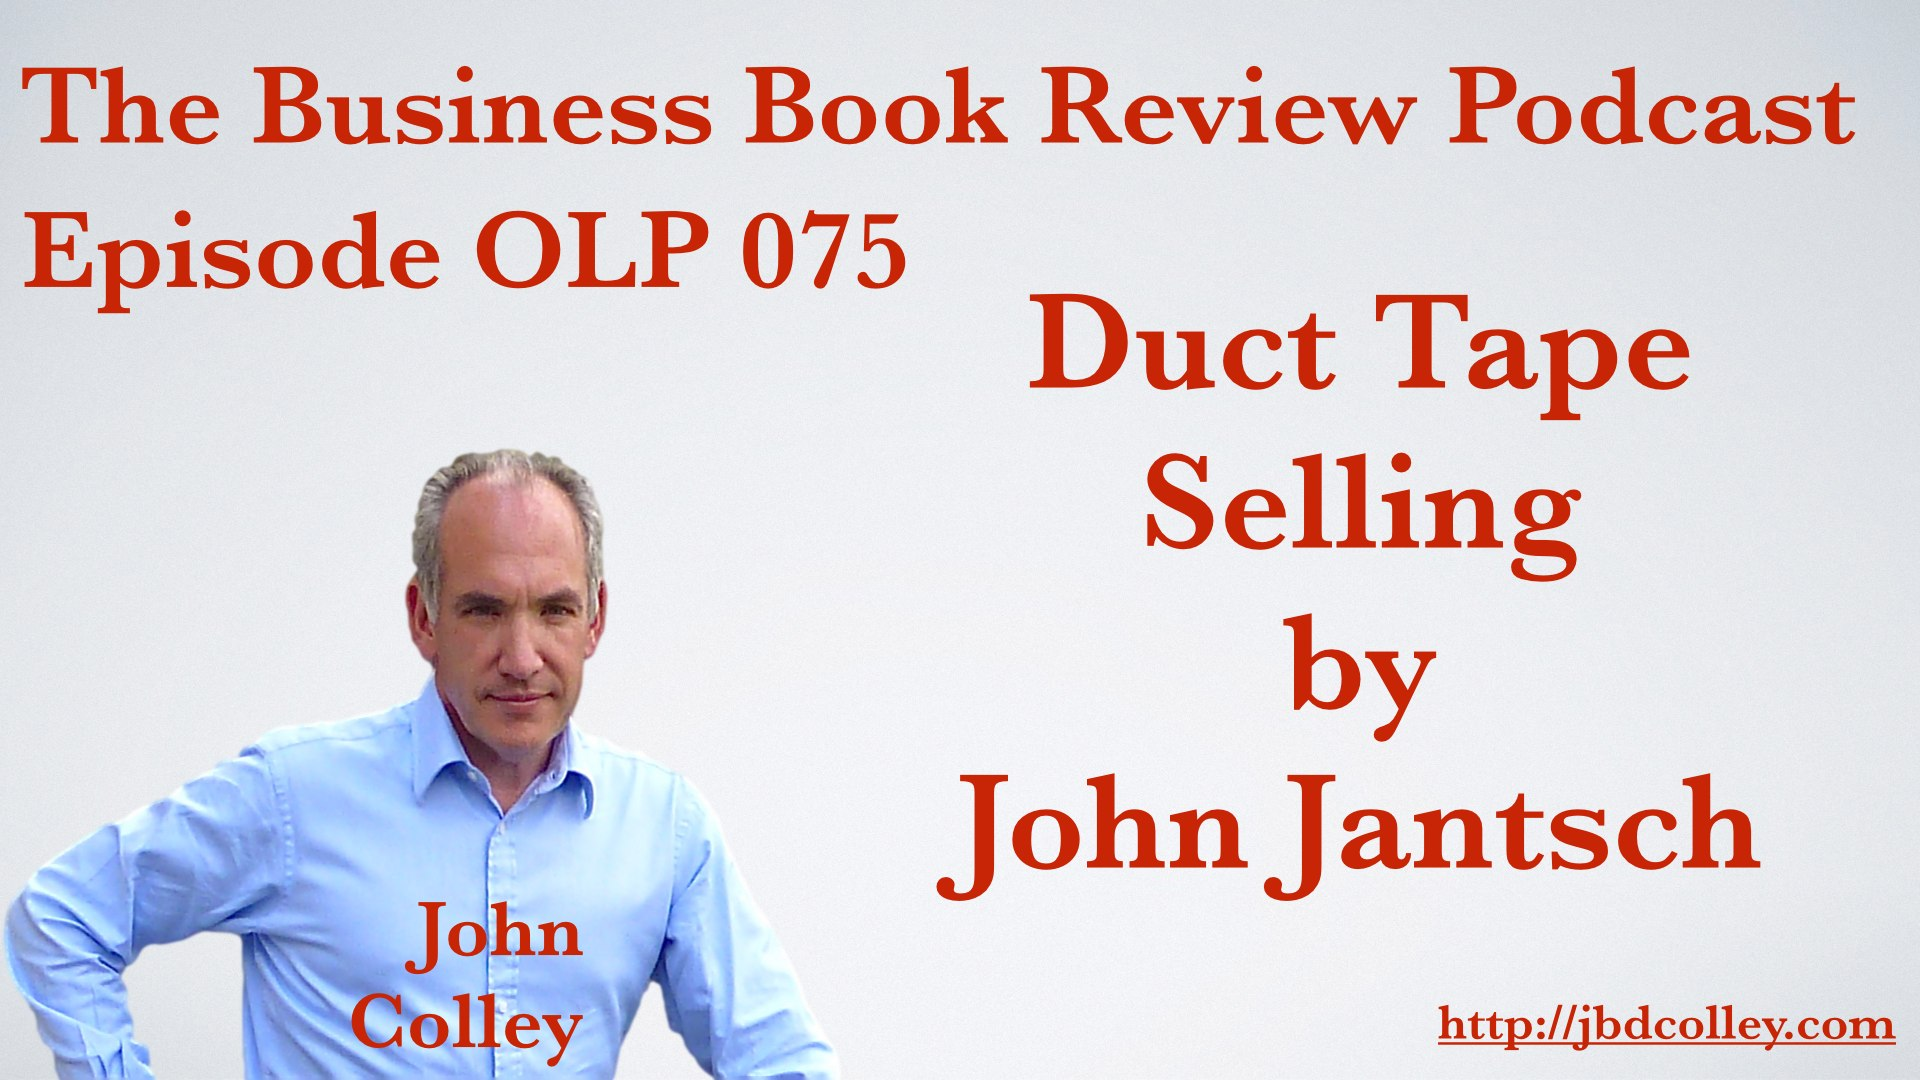 BBR075 - Duct Tape Selling by John Jantsch